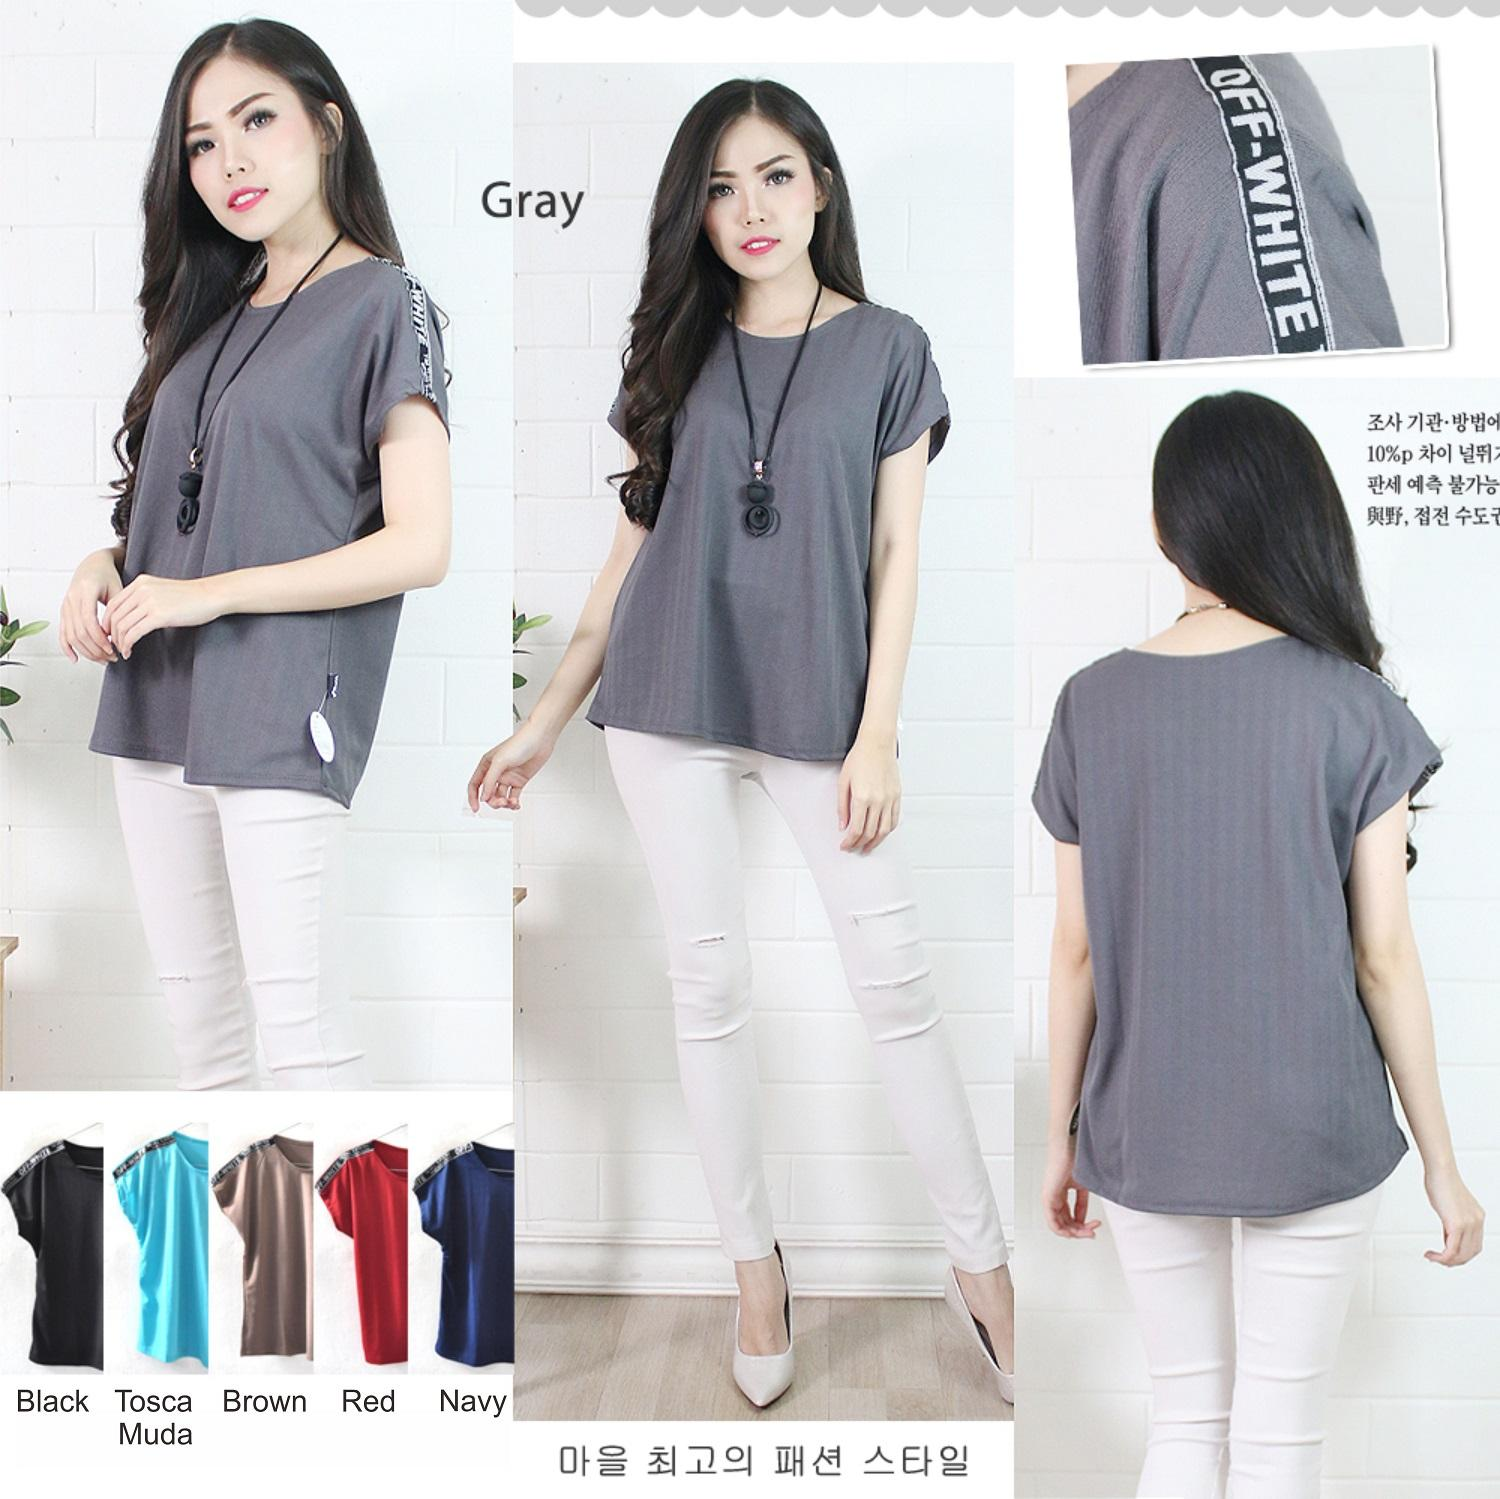 Baju Atasan Blouse Wanita Murah Short Sleeve with List A0279